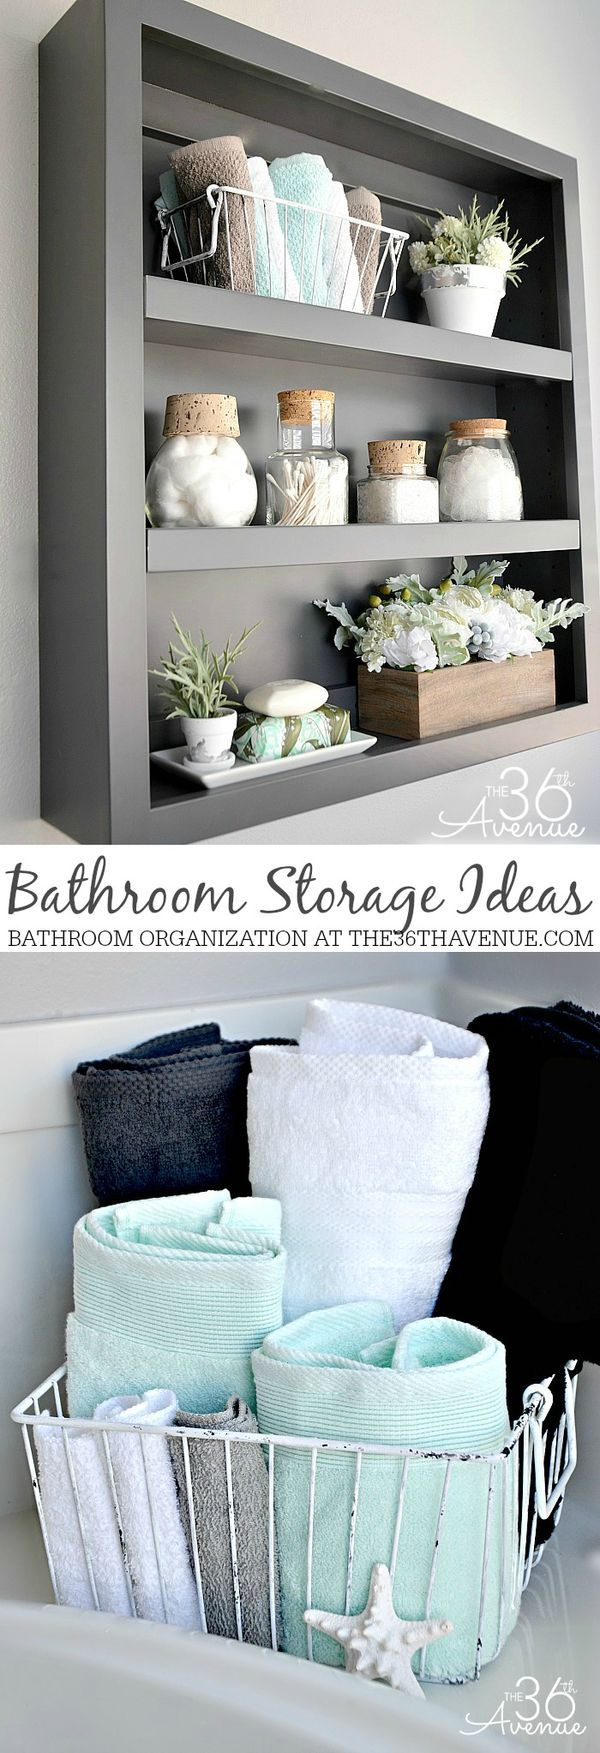 Bathroom Storage Organization Ideas #bathroomdecoration